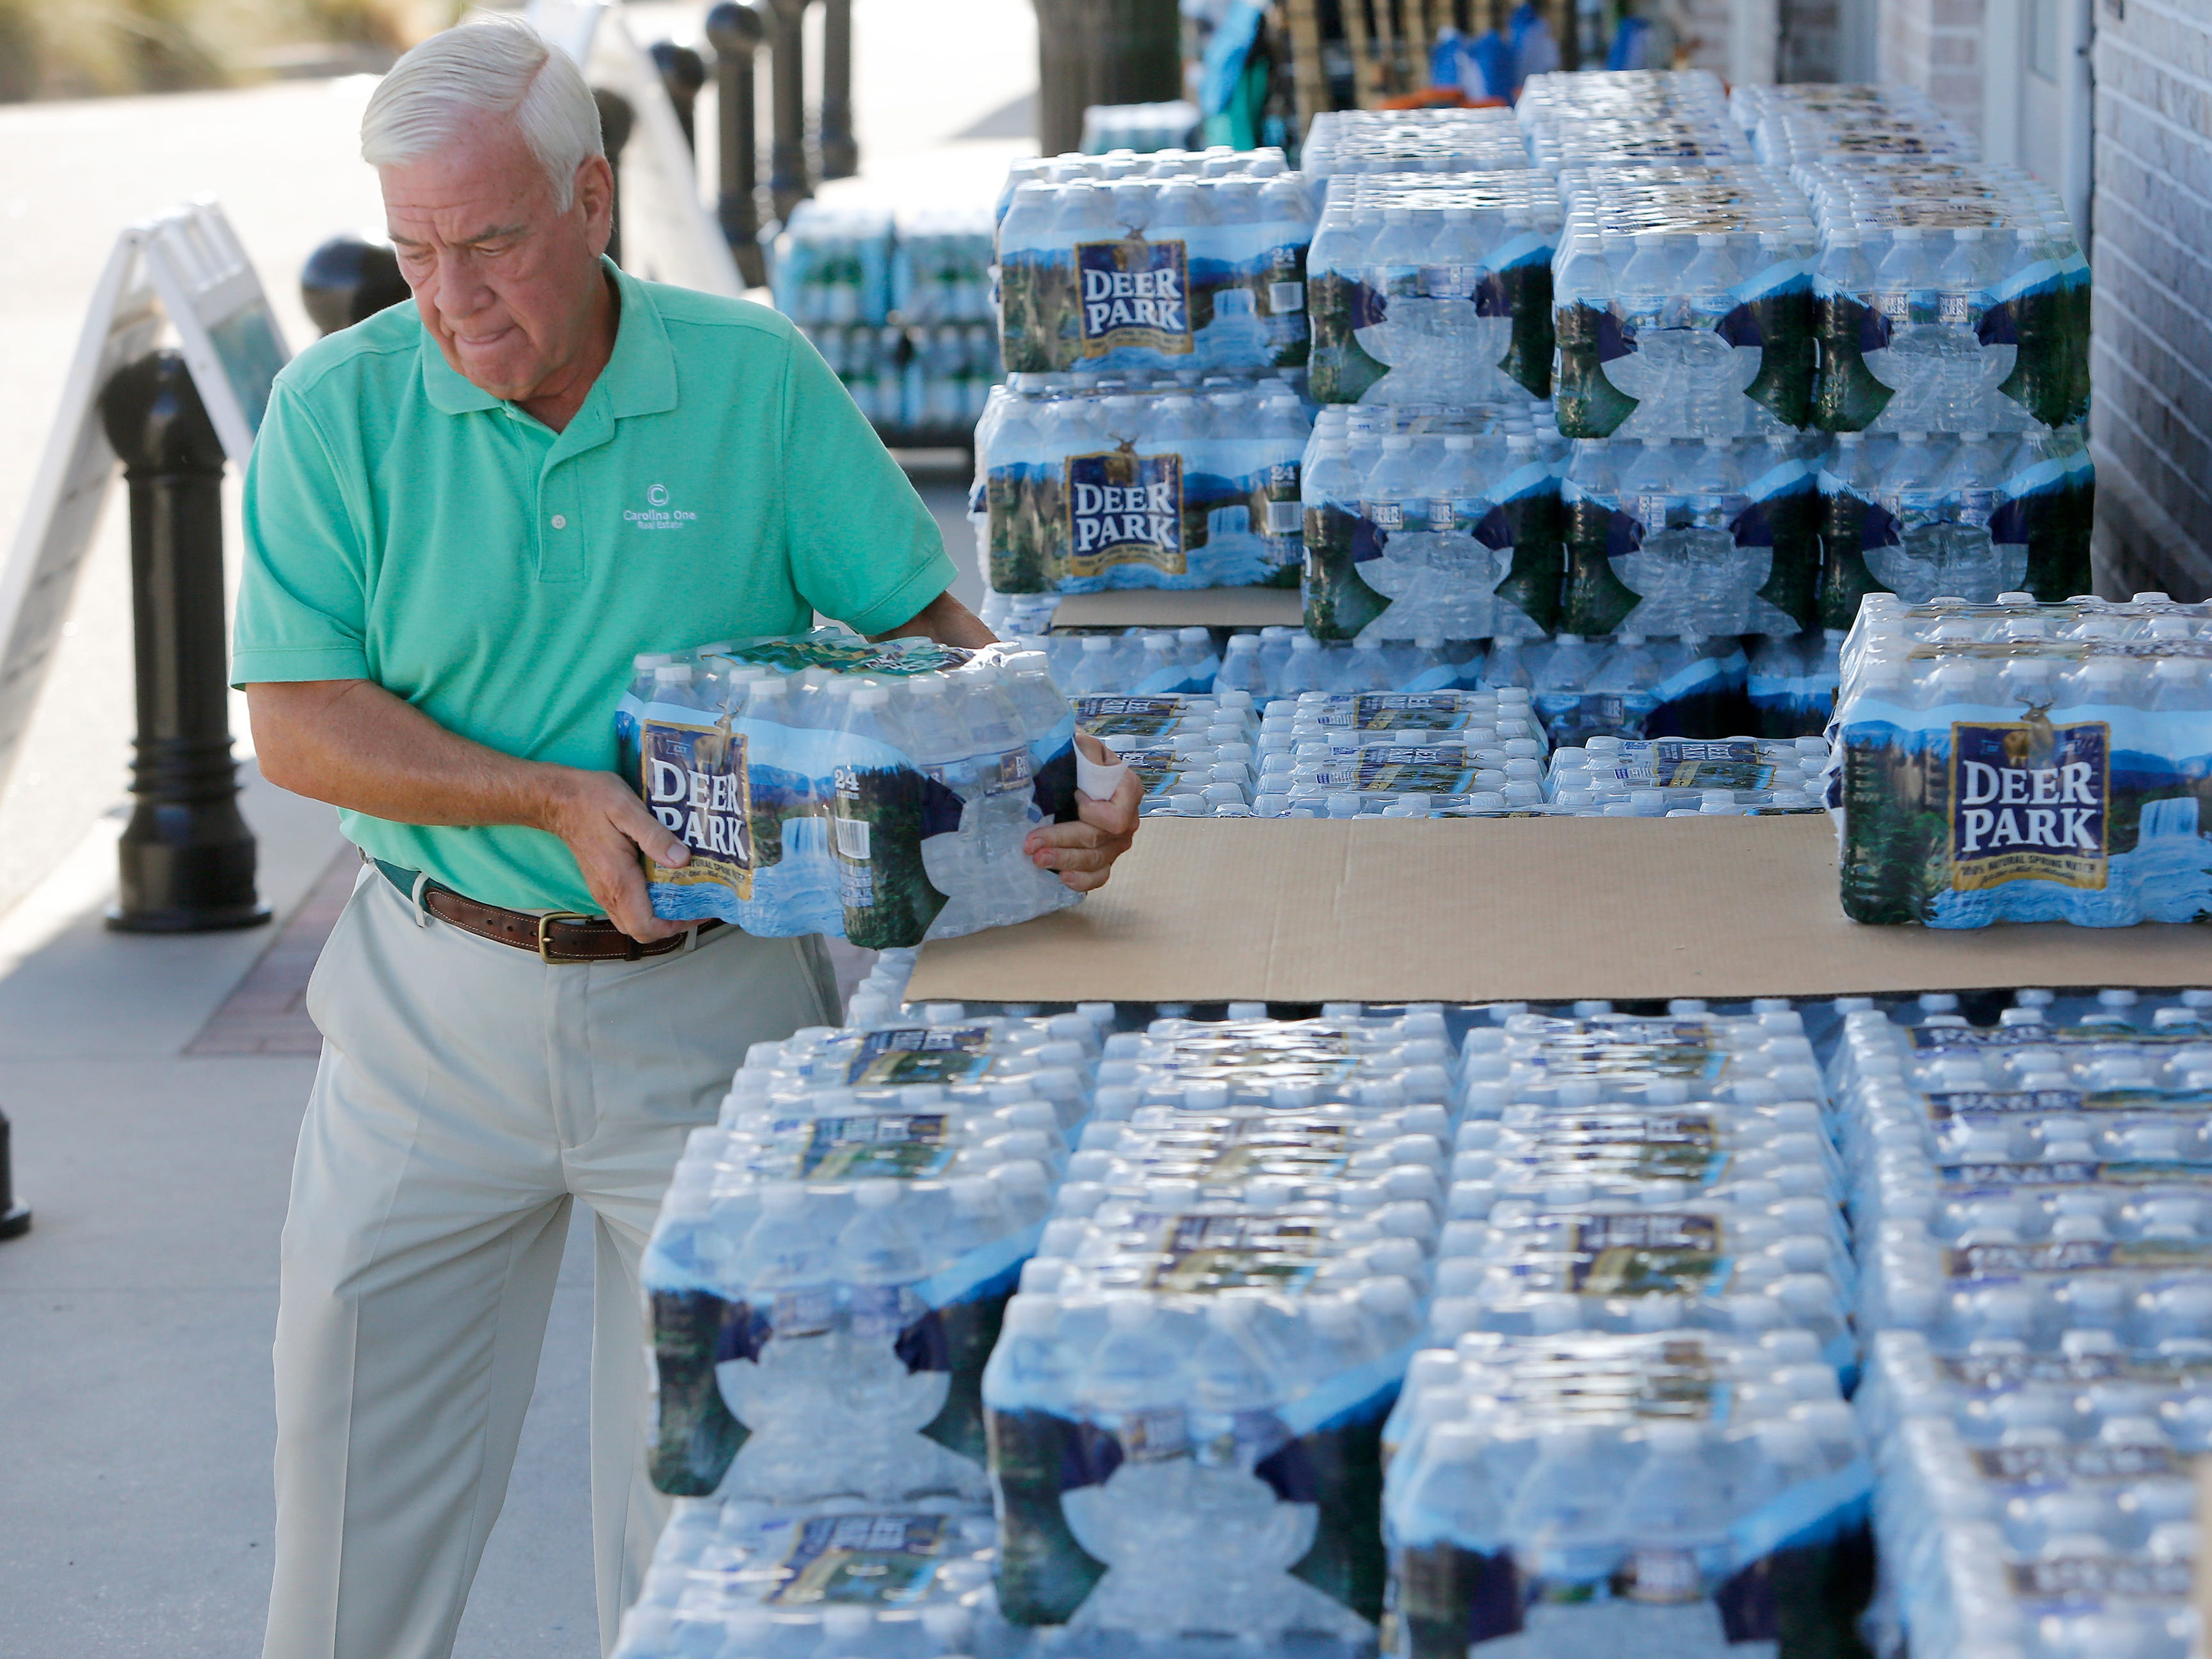 Larry Pierson, from the Isle of Palms, S.C., purchases bottled water from the Harris Teeter grocery store on the Isle of Palms in preparation for Hurricane Florence at the Isle of Palms S.C., Monday, Sept. 10, 2018.